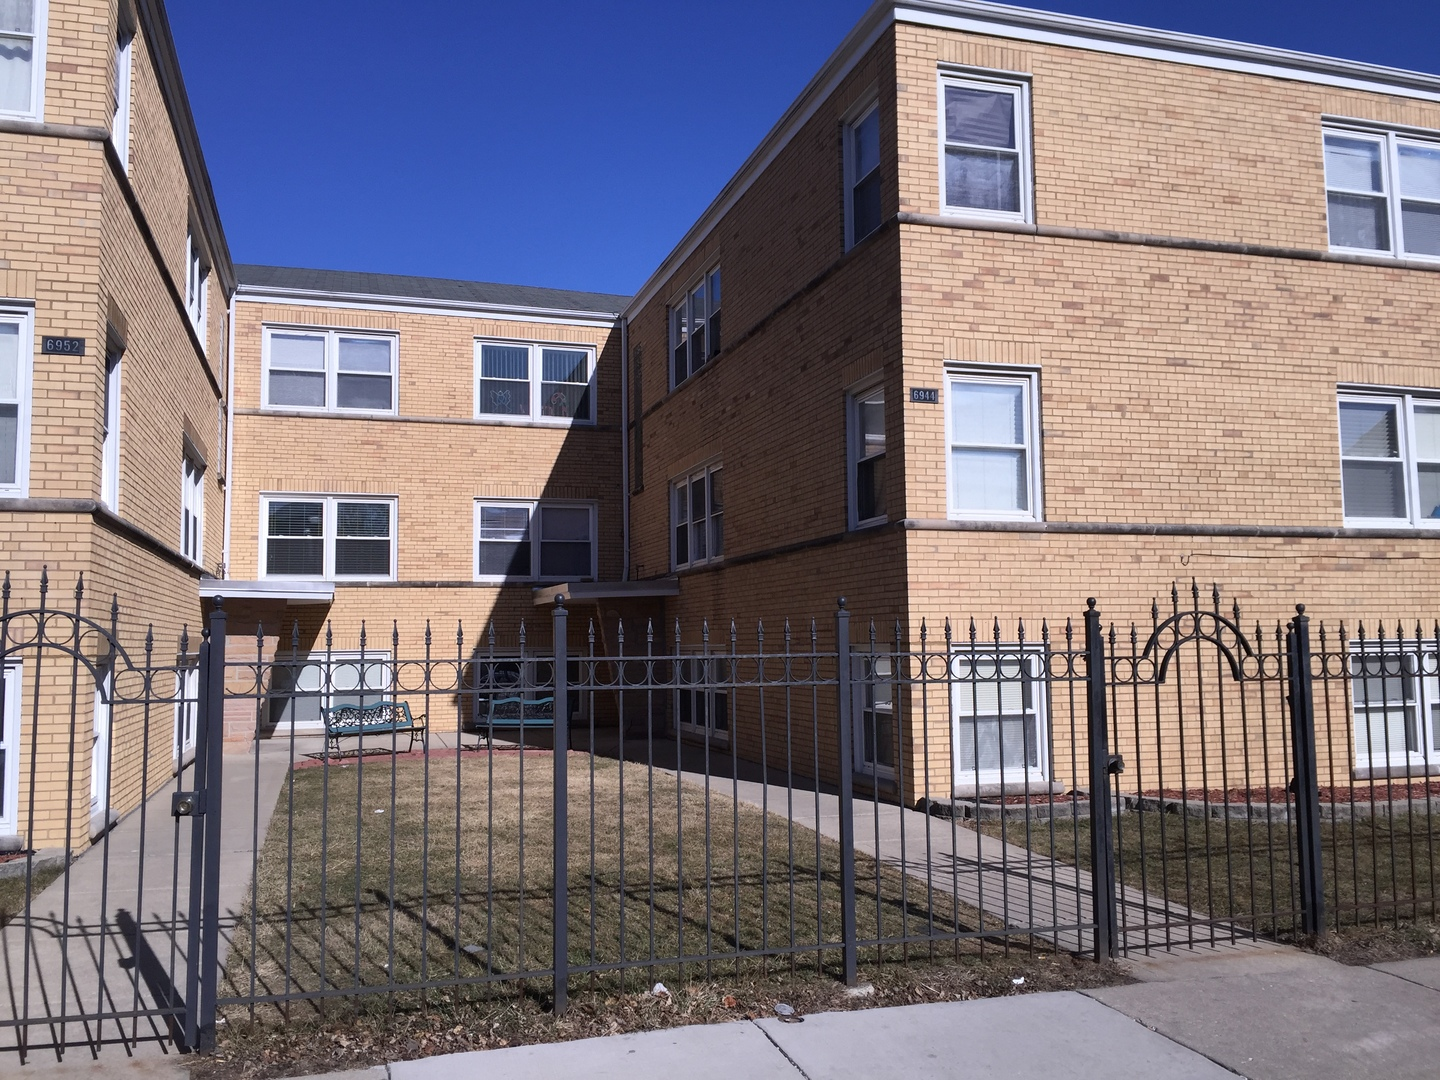 6952 W Diversey AVE Unit #1S, Chicago, IL, 60607, condos and townhomes for sale